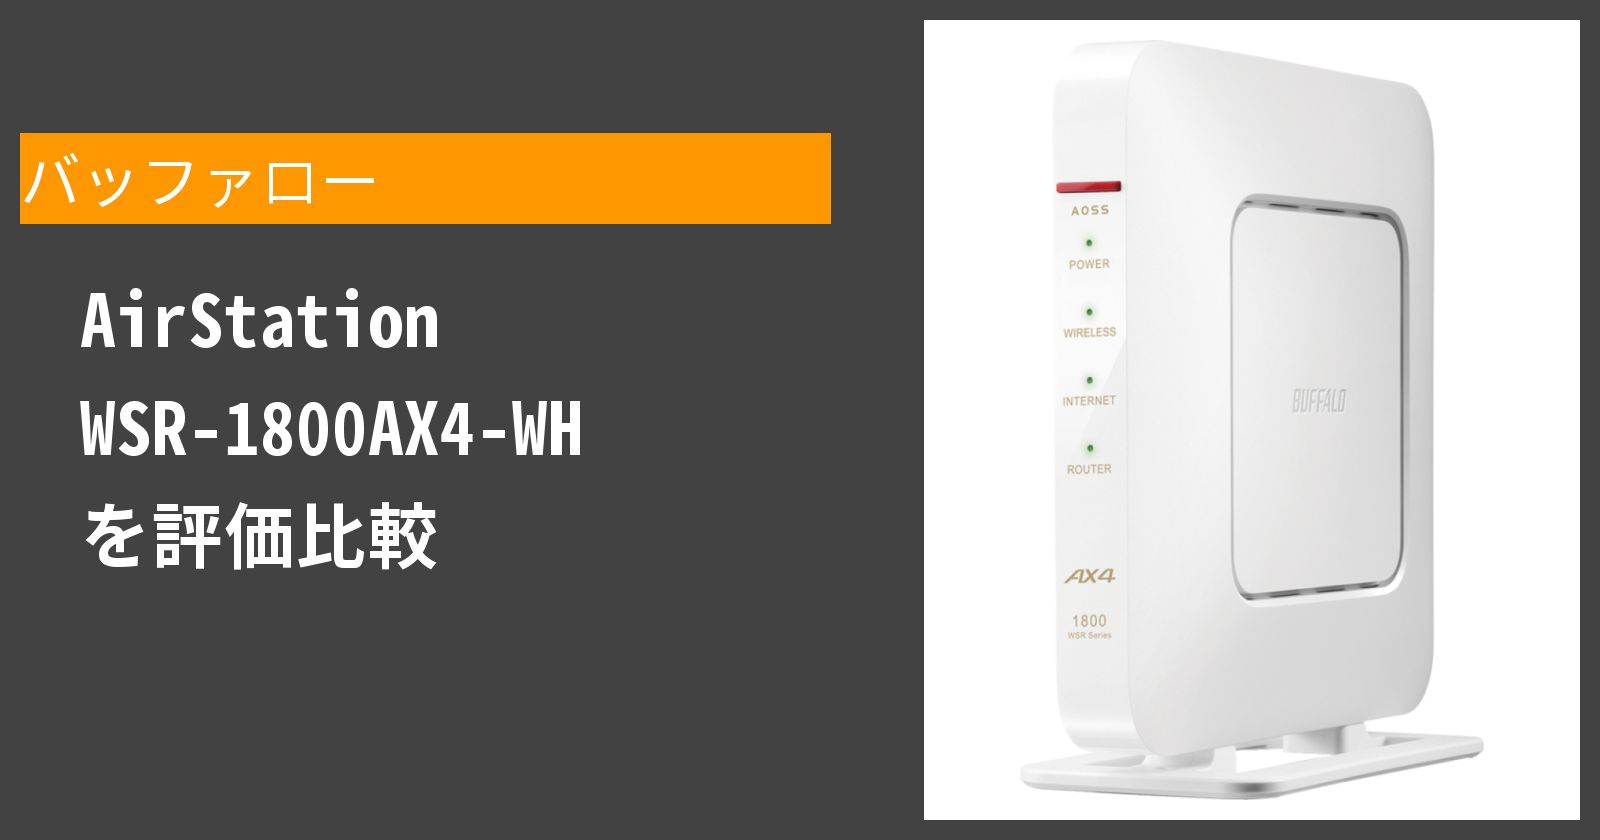 AirStation WSR-1800AX4-WHを徹底評価